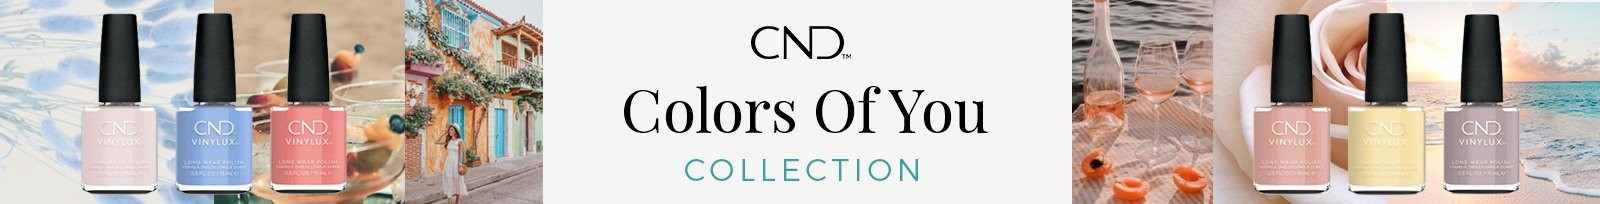 The Colors of You 2021 Collection